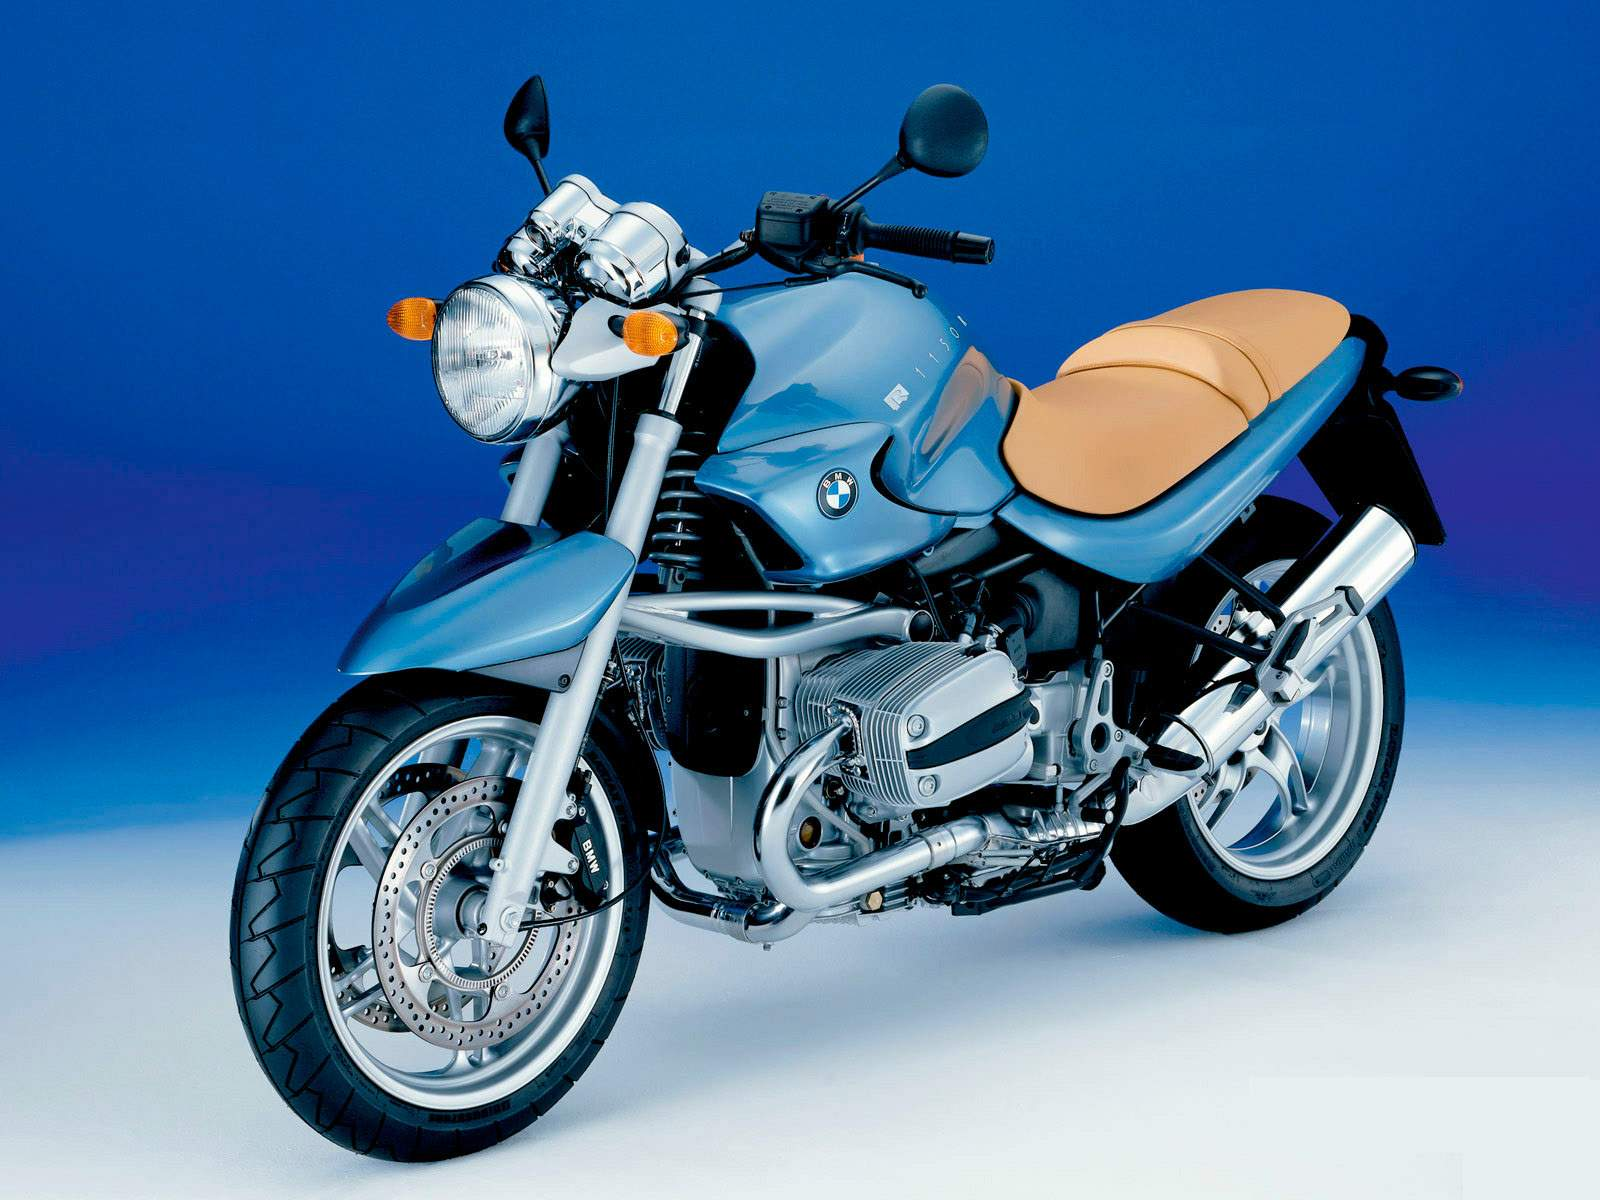 BMW R 1150R technical specifications